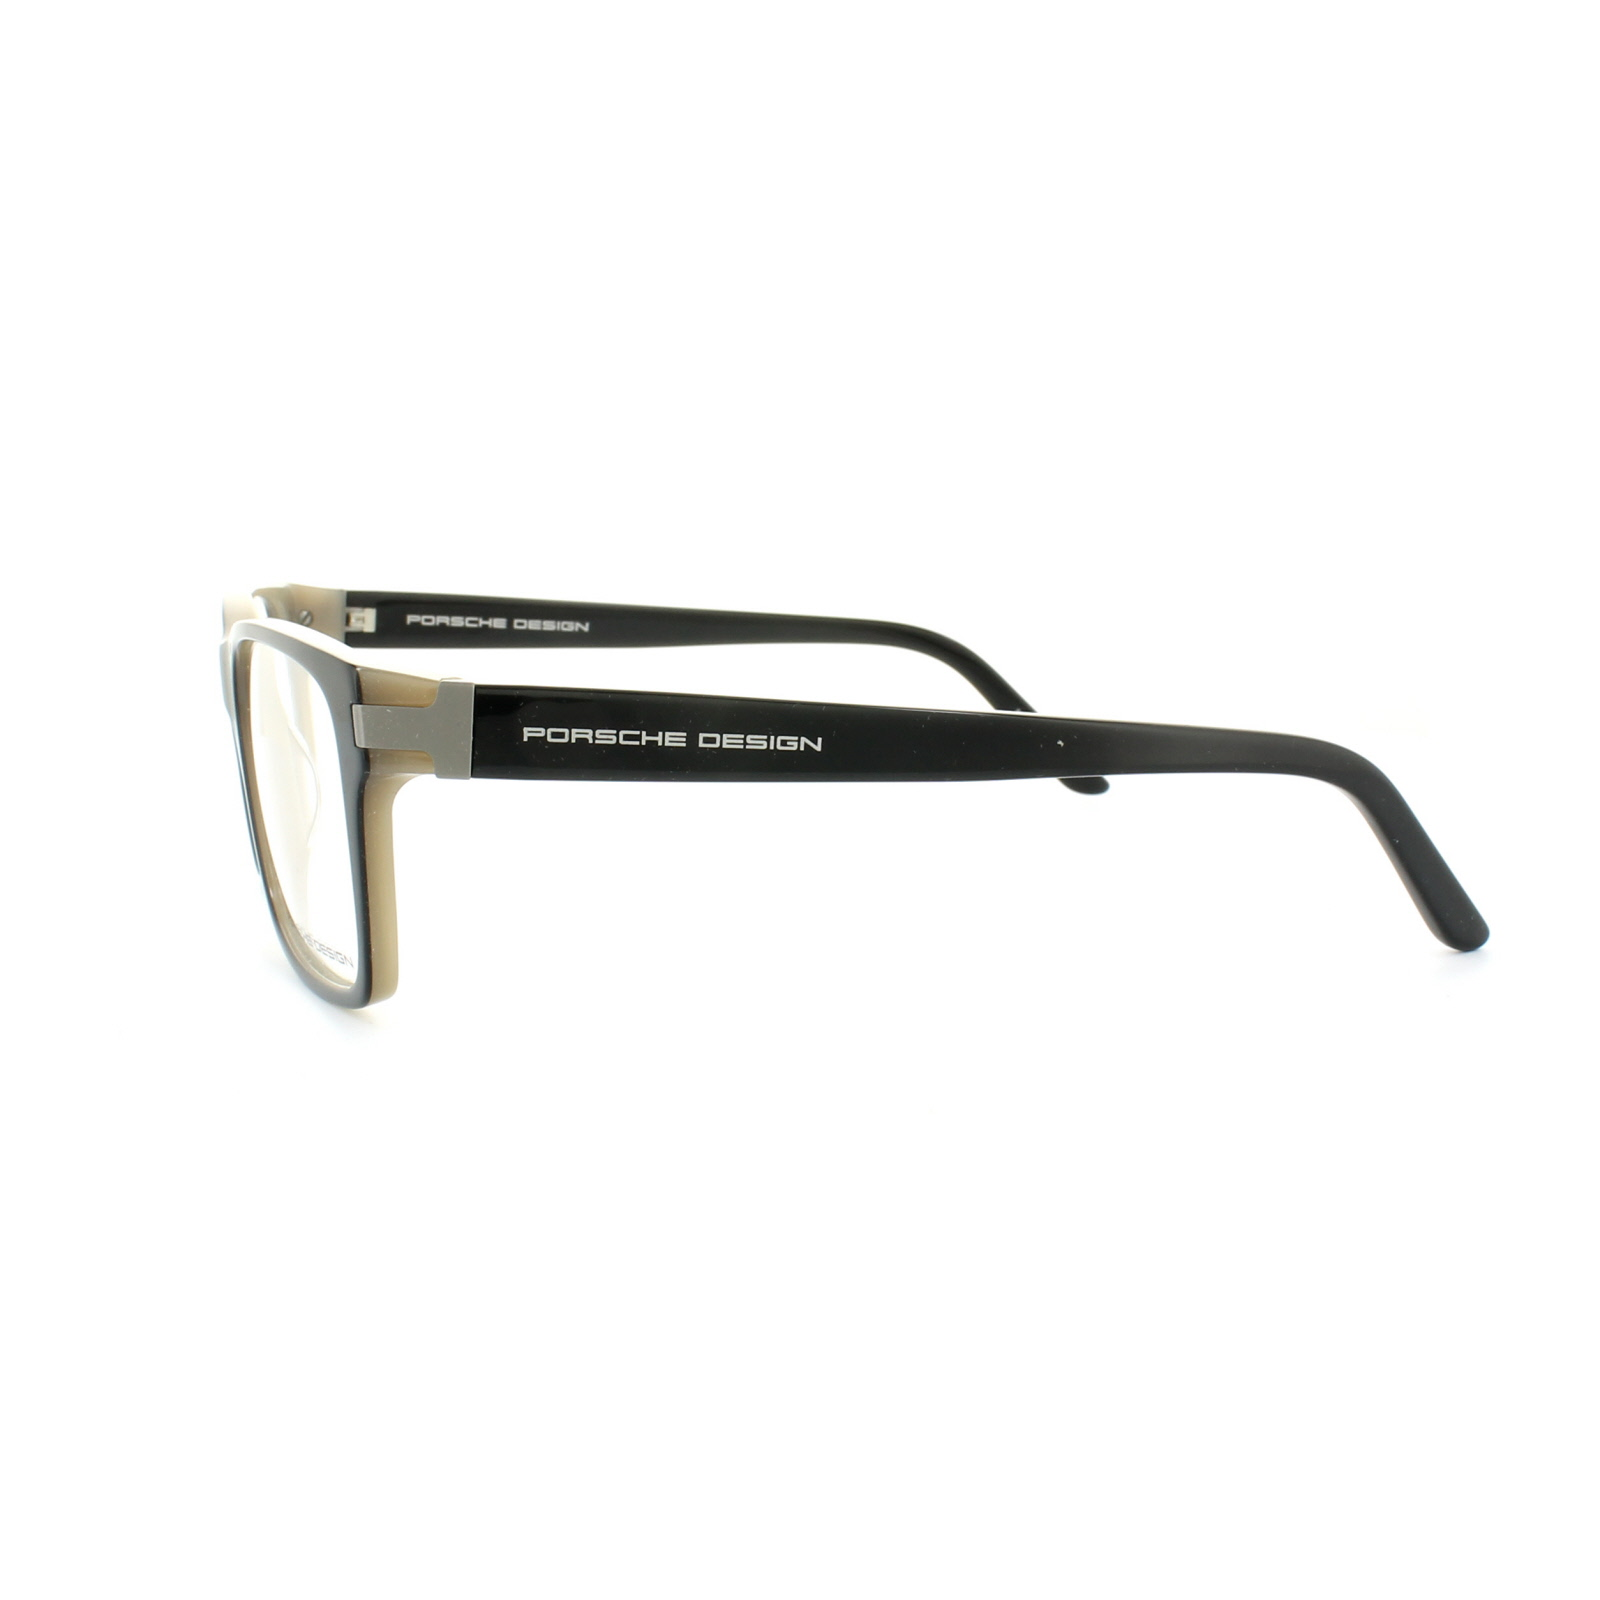 Porsche Design Glasses Frame : Cheap Porsche Design P8249 Glasses Frames - Discounted ...